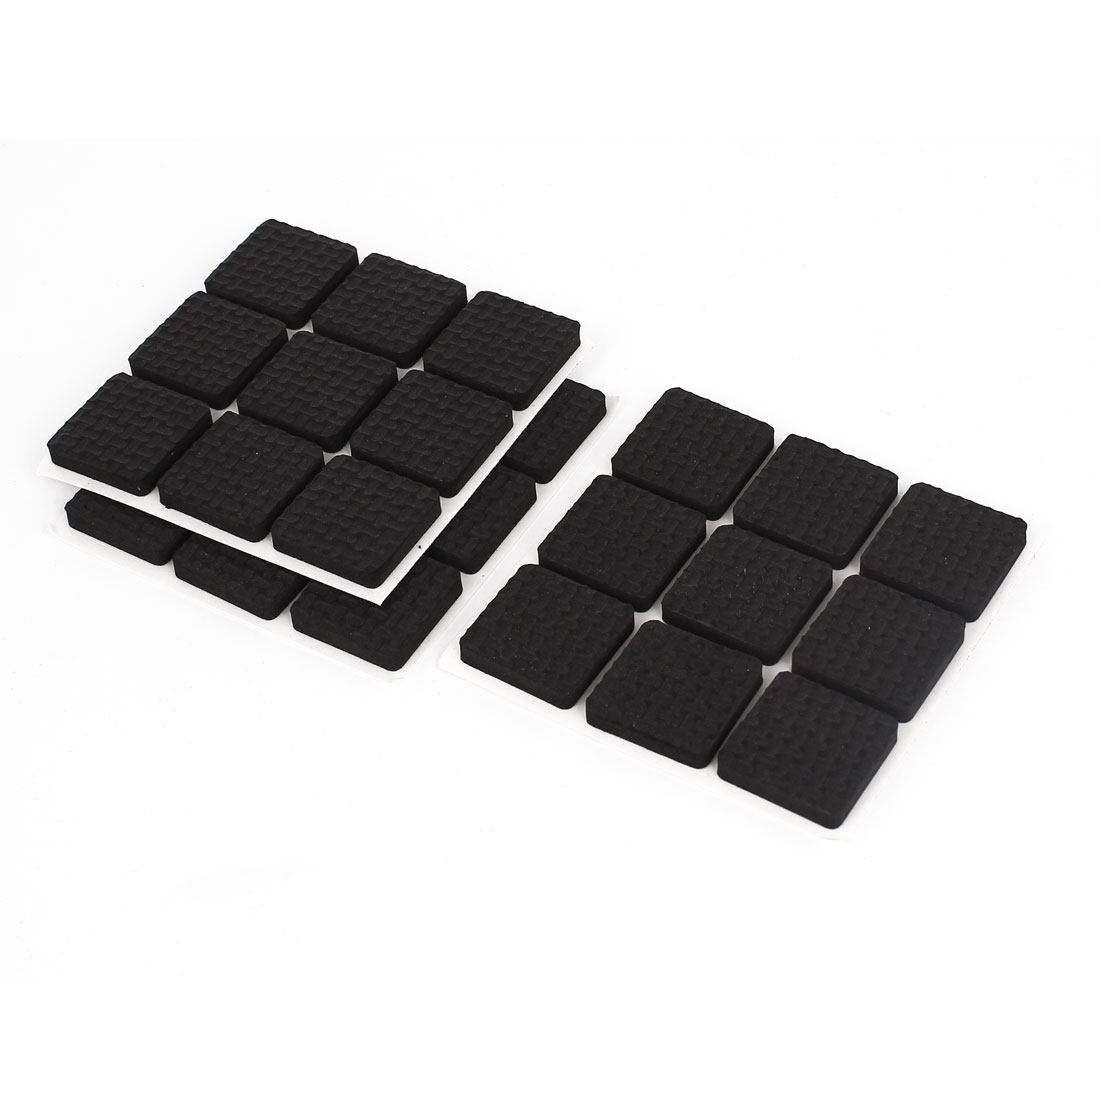 Unique Bargains Furniture Floor Black Square 22mm x 22mm Foam Protection Cushion Pad 27 Pcs